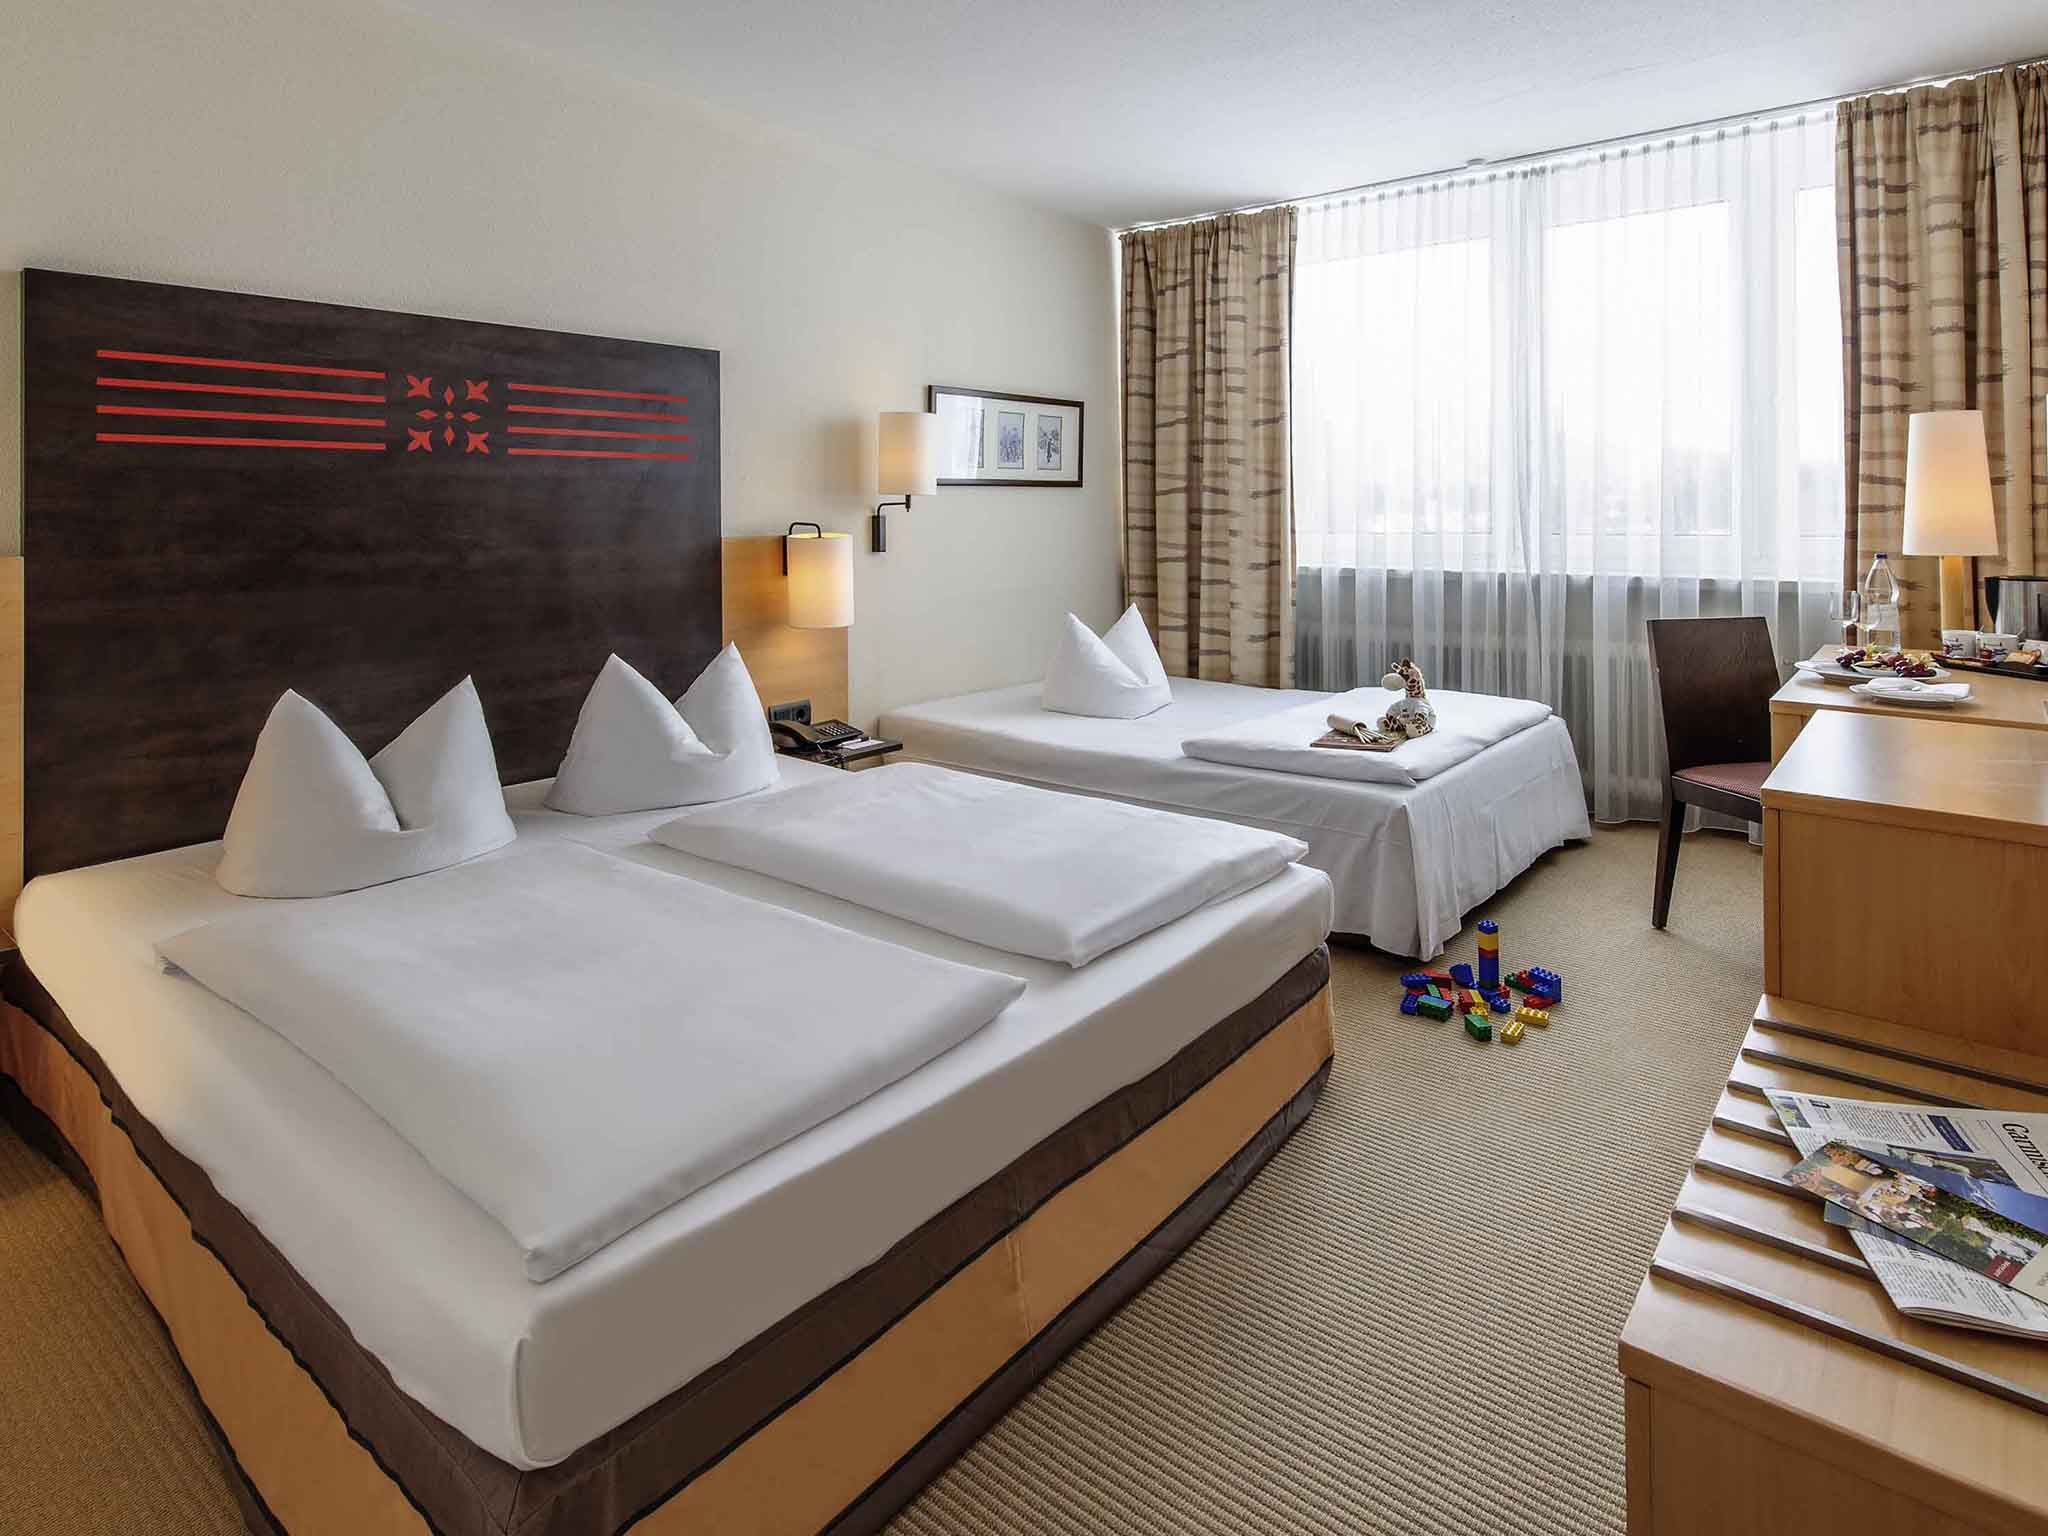 Fabulous rooms mercure hotel with neckermann boxspring for Hotel mobel gebraucht